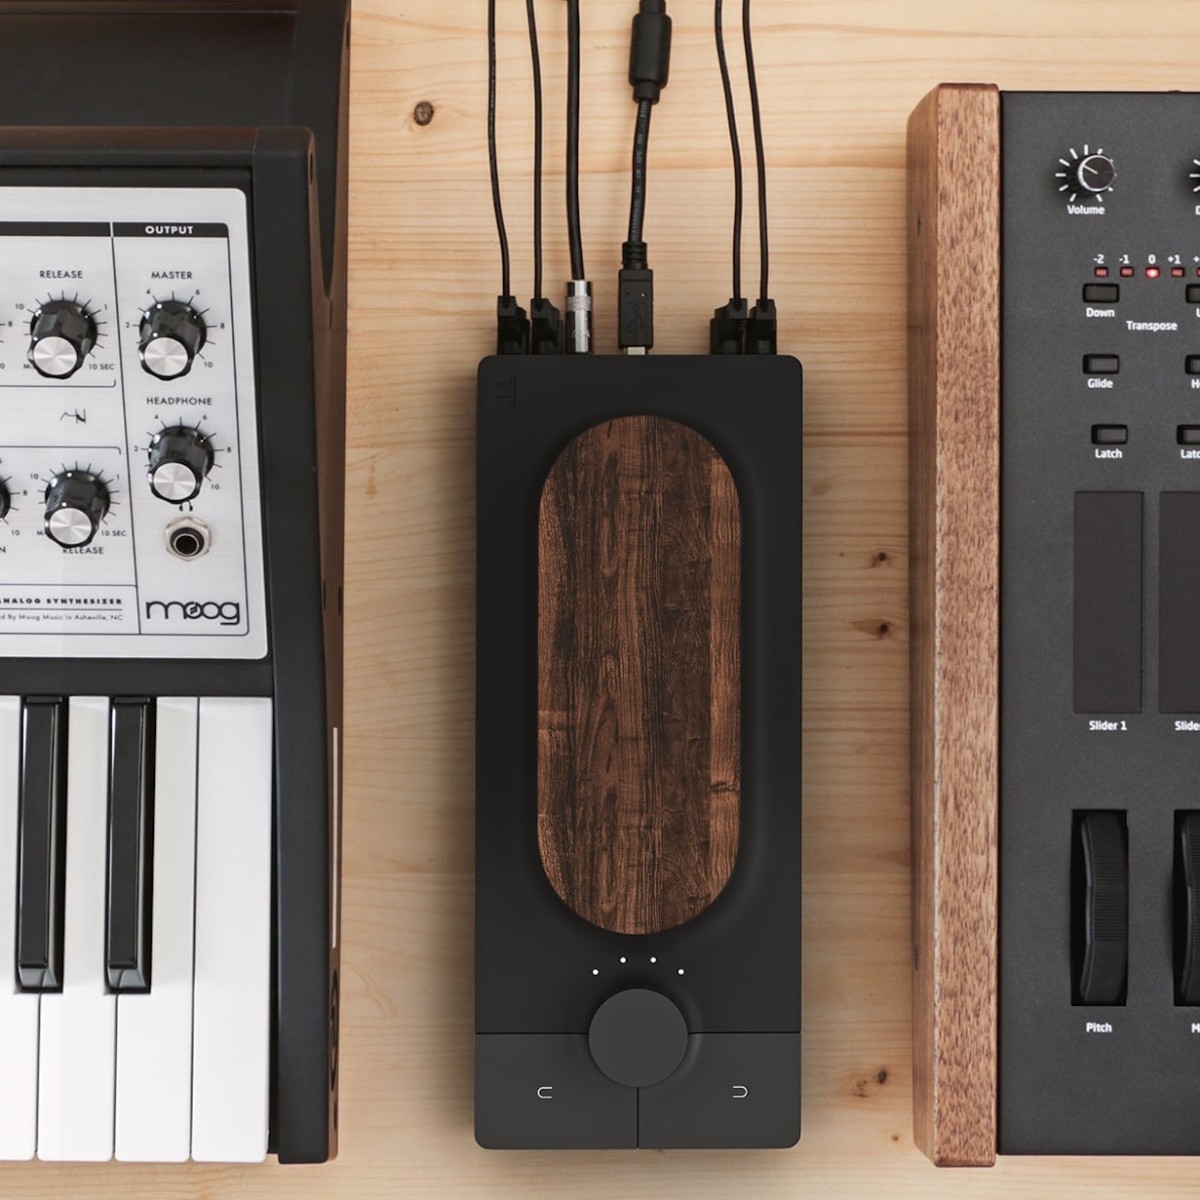 Expressive E Touché Expressive Instrument Controller manages both hardware and software synthesizers